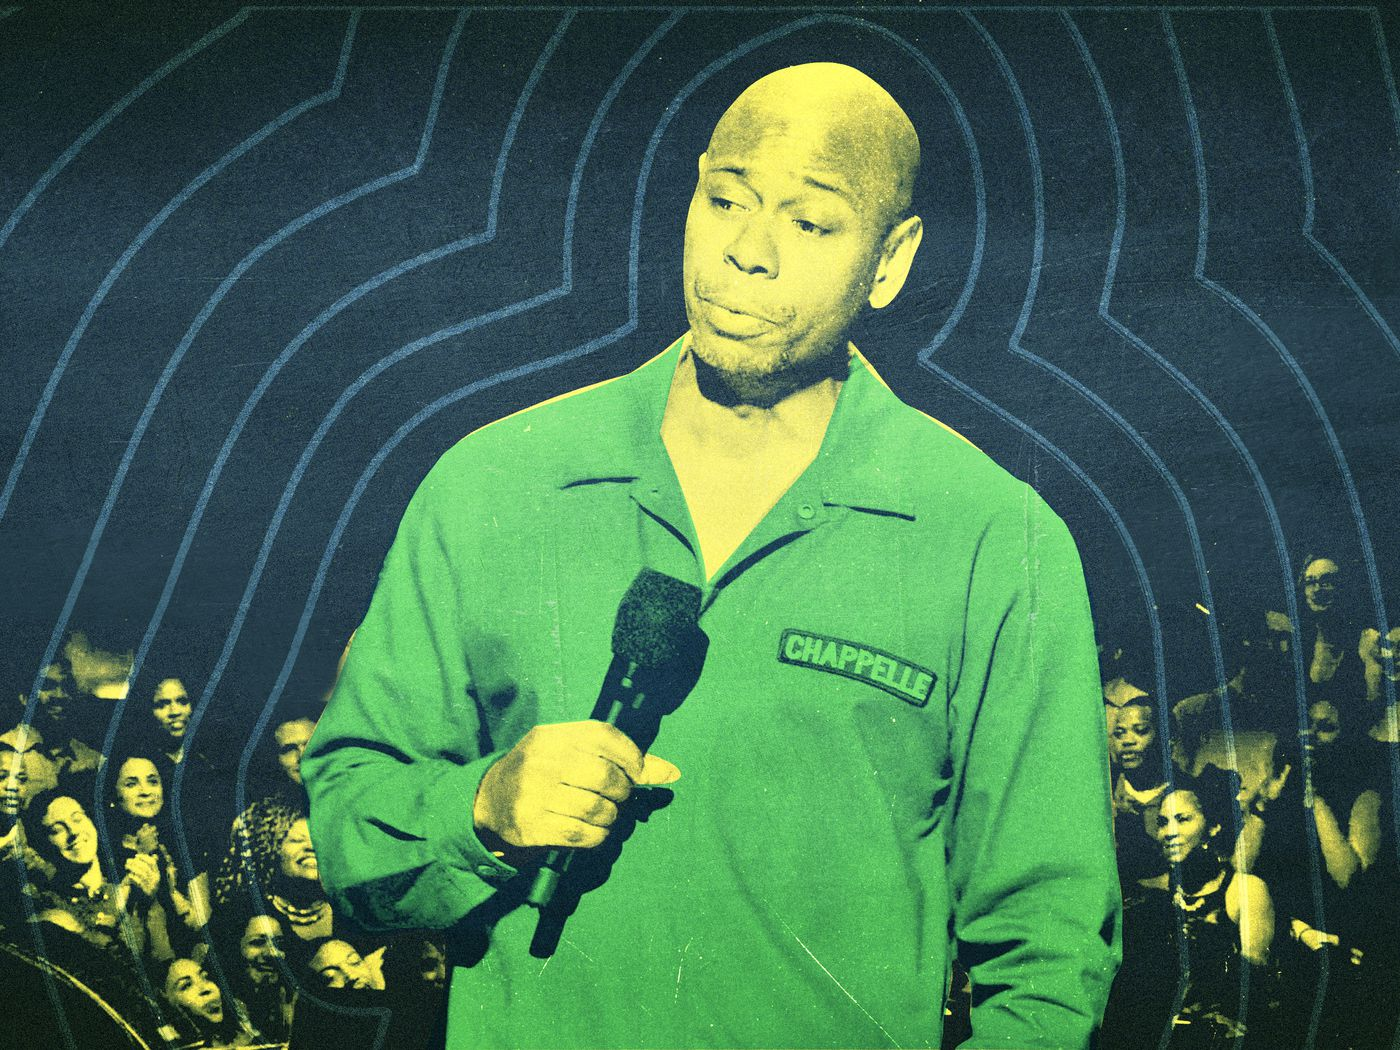 Dave Chappelle's Provocations Have Turned Predictable - The